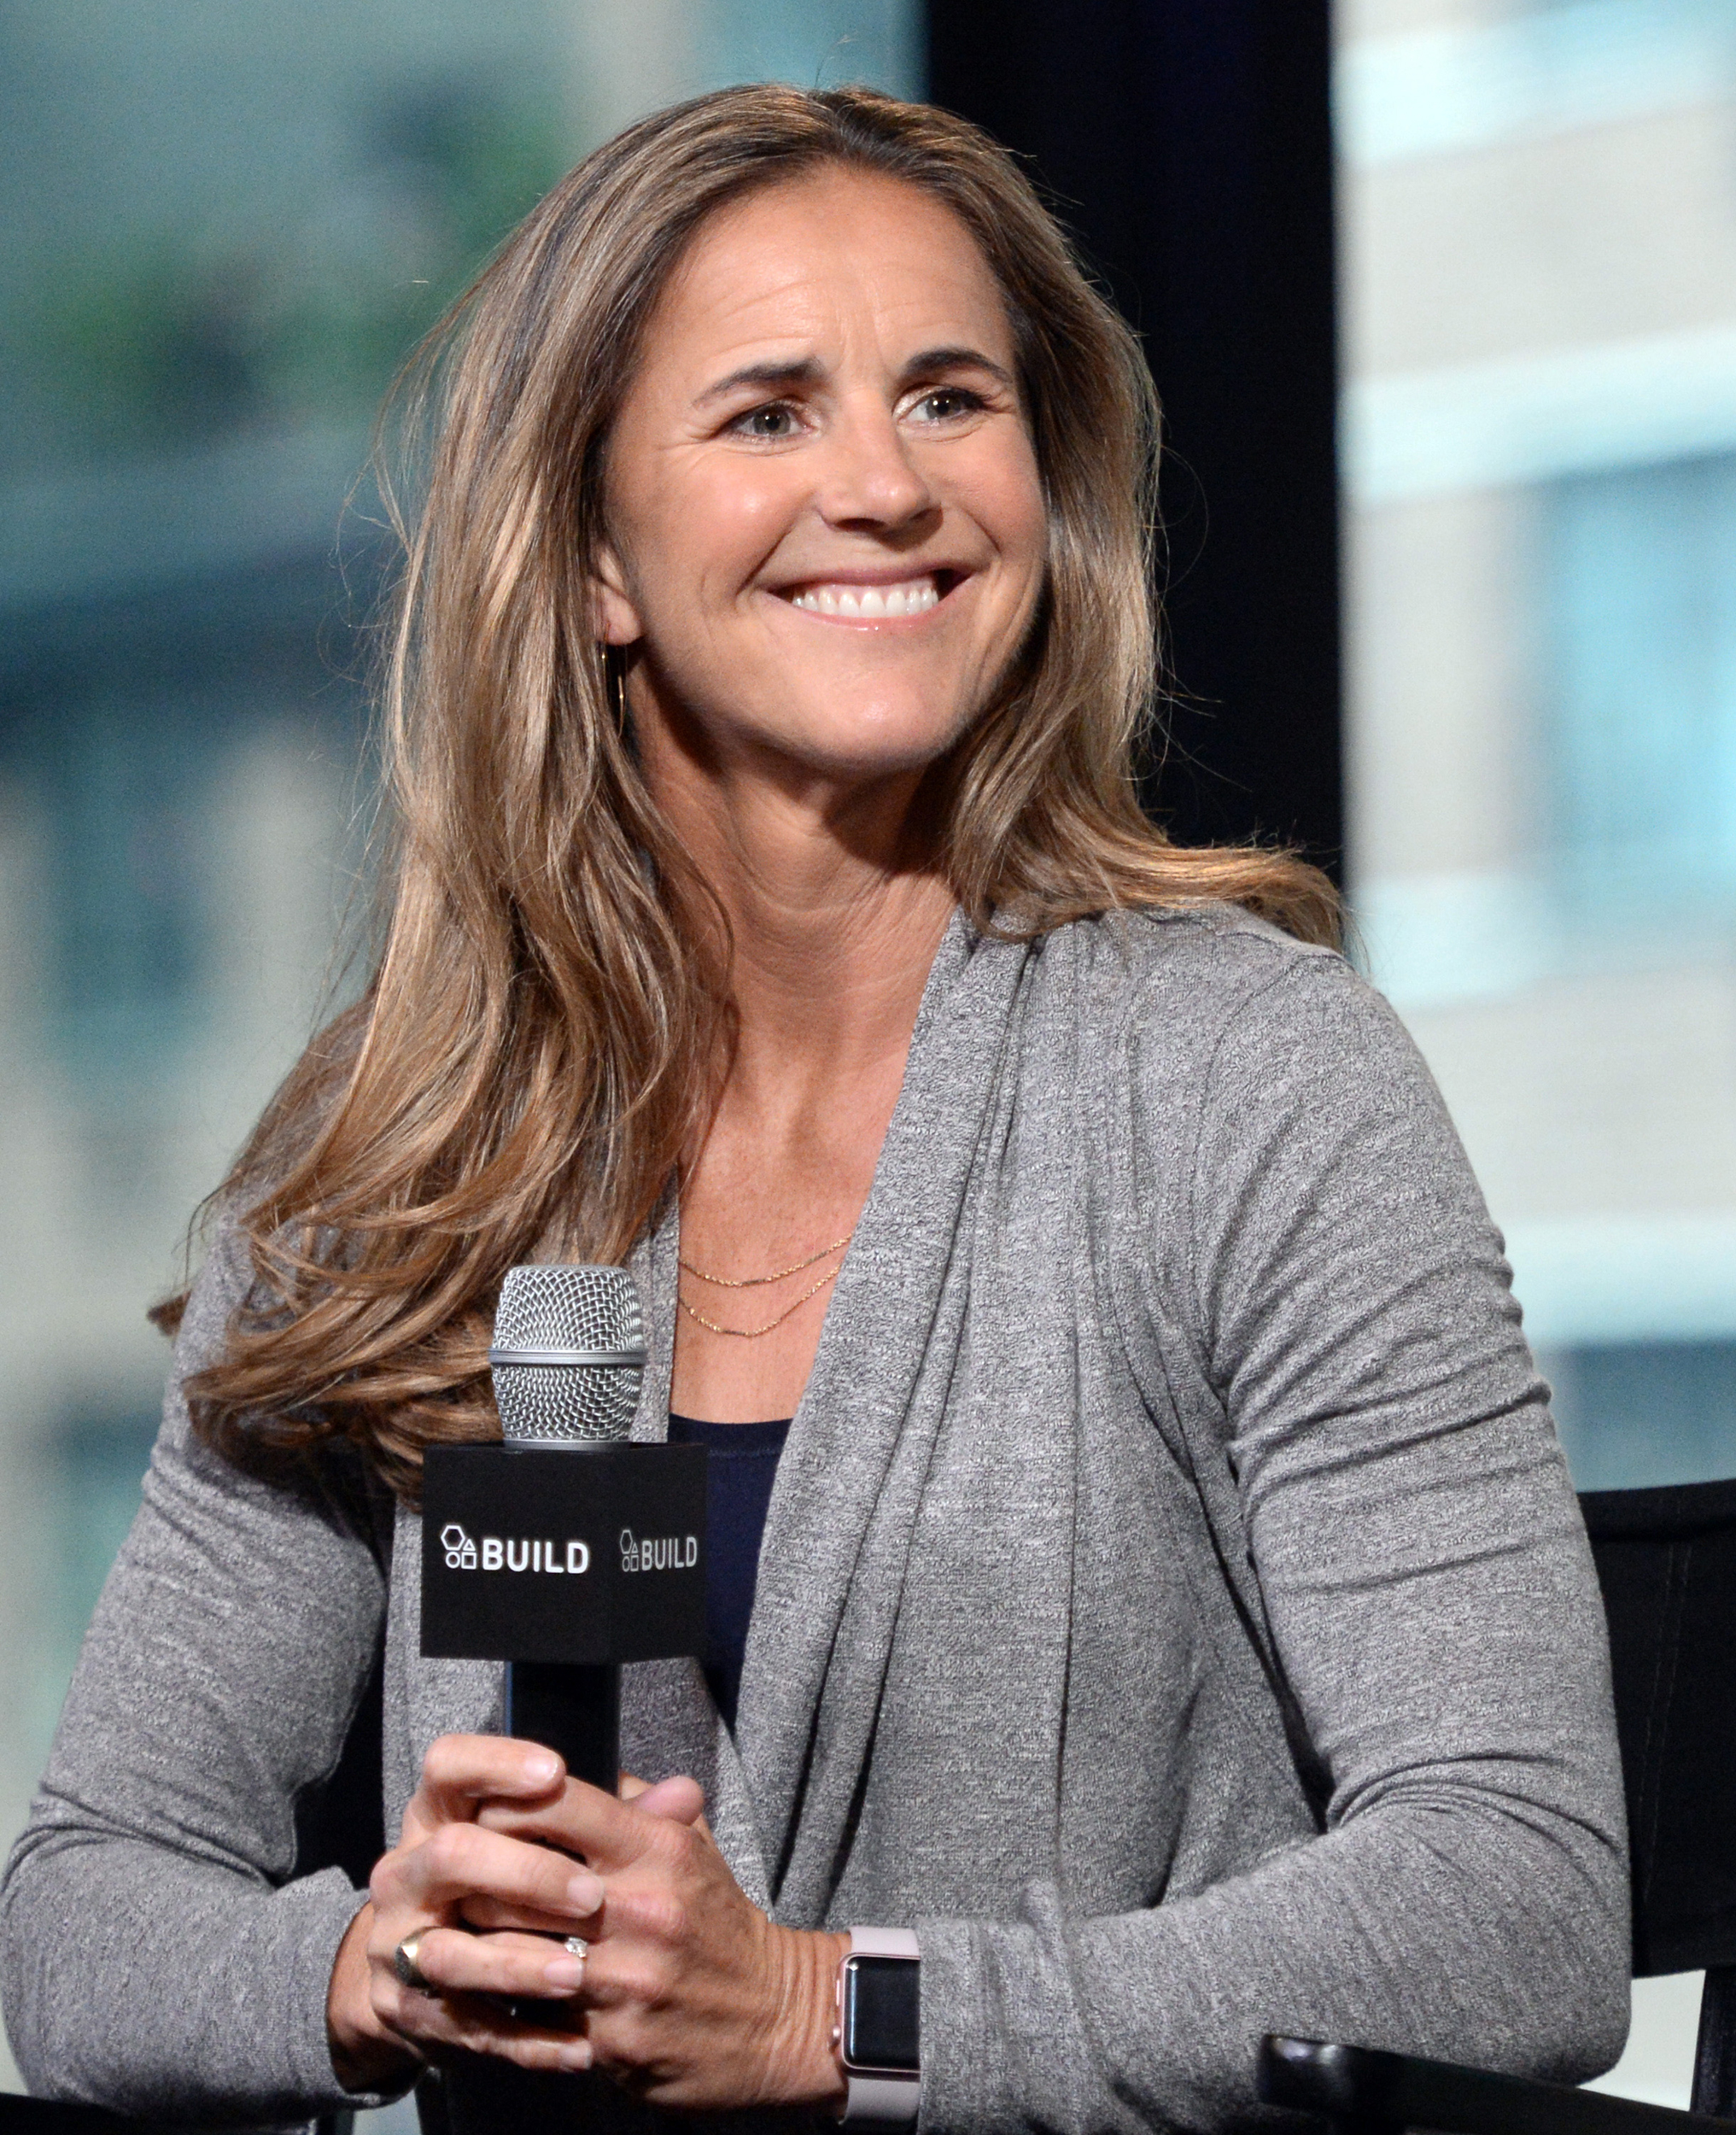 Brandi Chastain naked (19 foto and video), Topless, Cleavage, Boobs, butt 2017